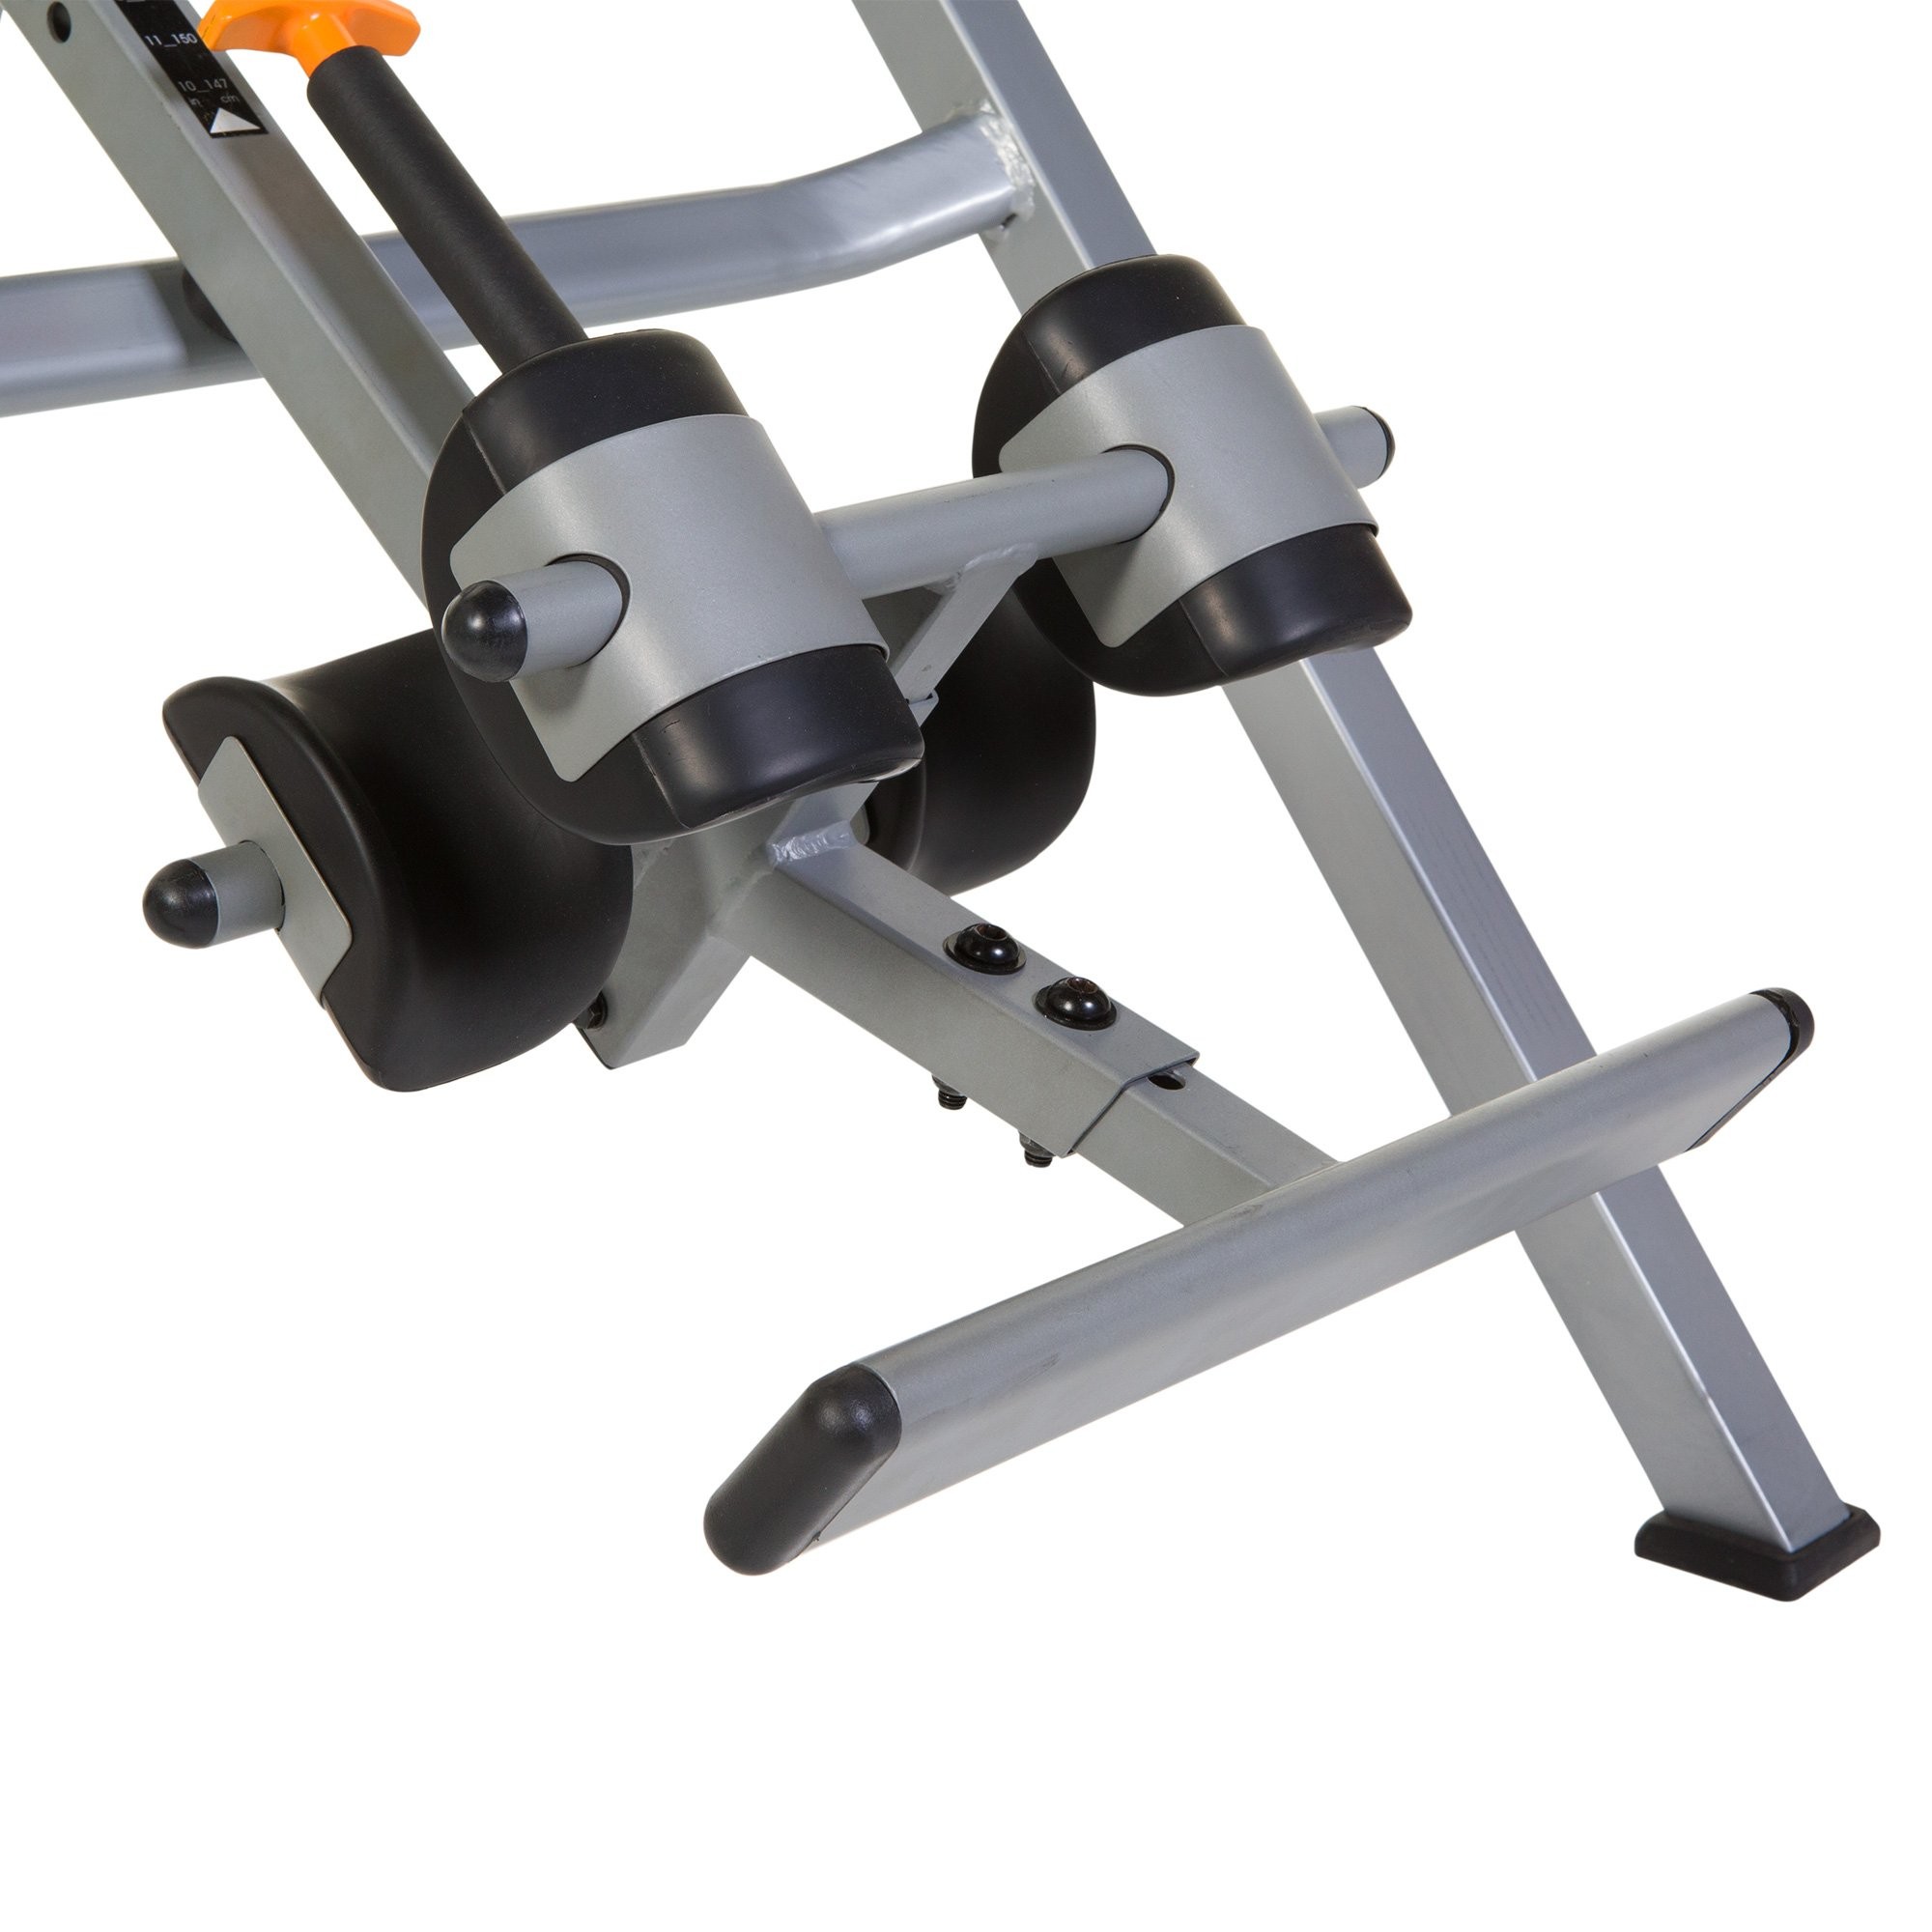 Ironman iControl 400 Disk Brake System Inversion Table by IRONMAN (Image #6)